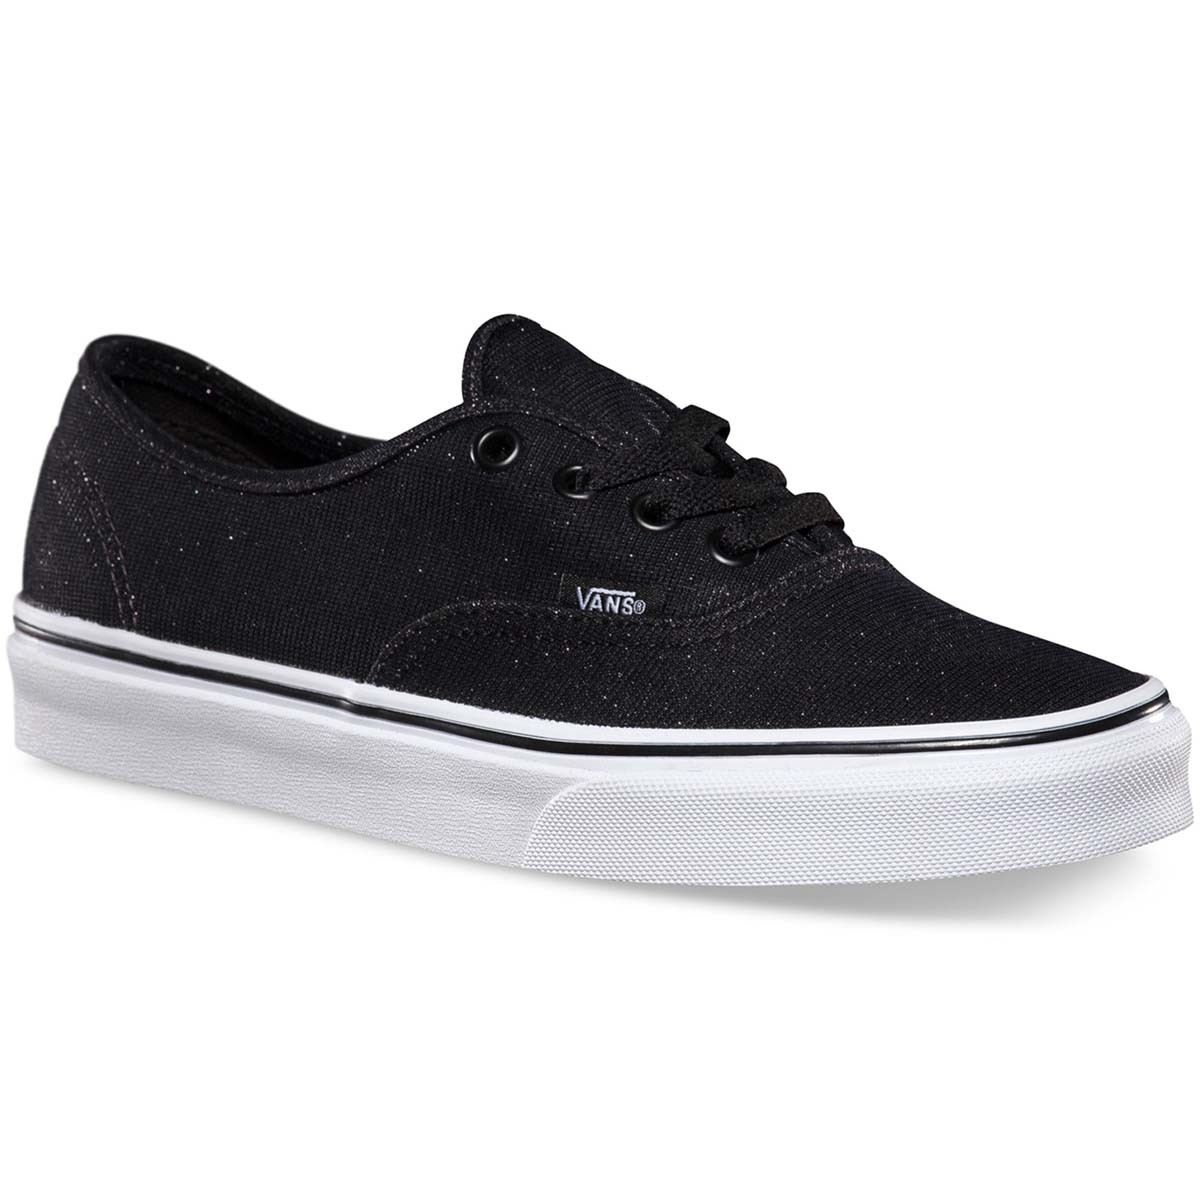 Vans Shimmer Authentic Womens Shoes - Black 7.5